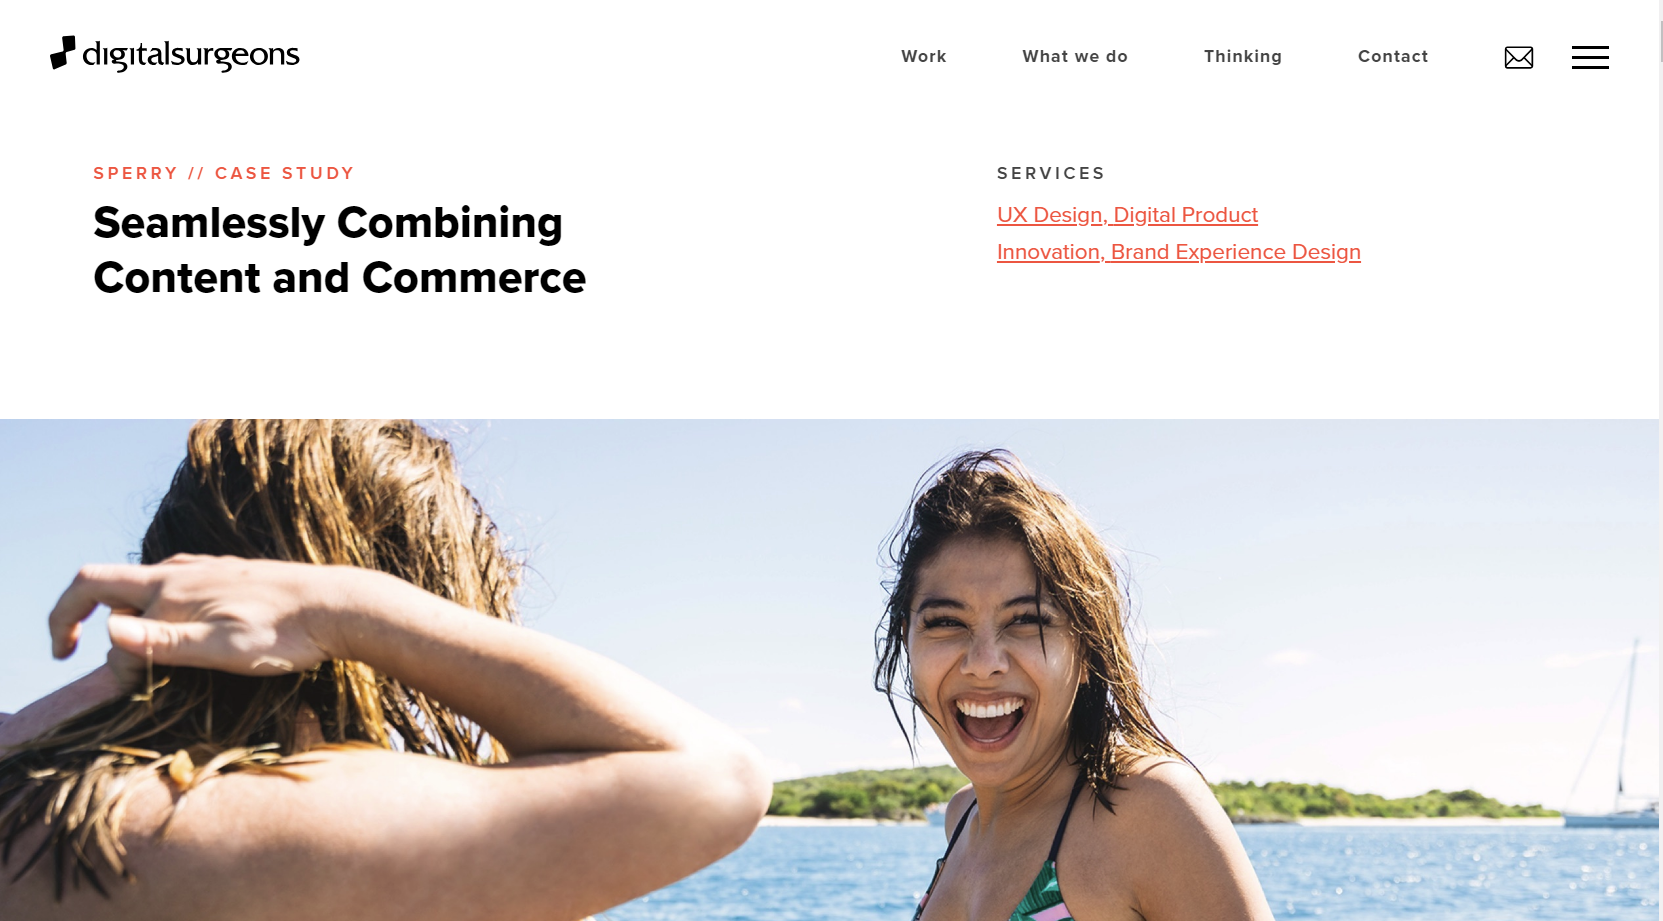 agency case study content and commerce sperry